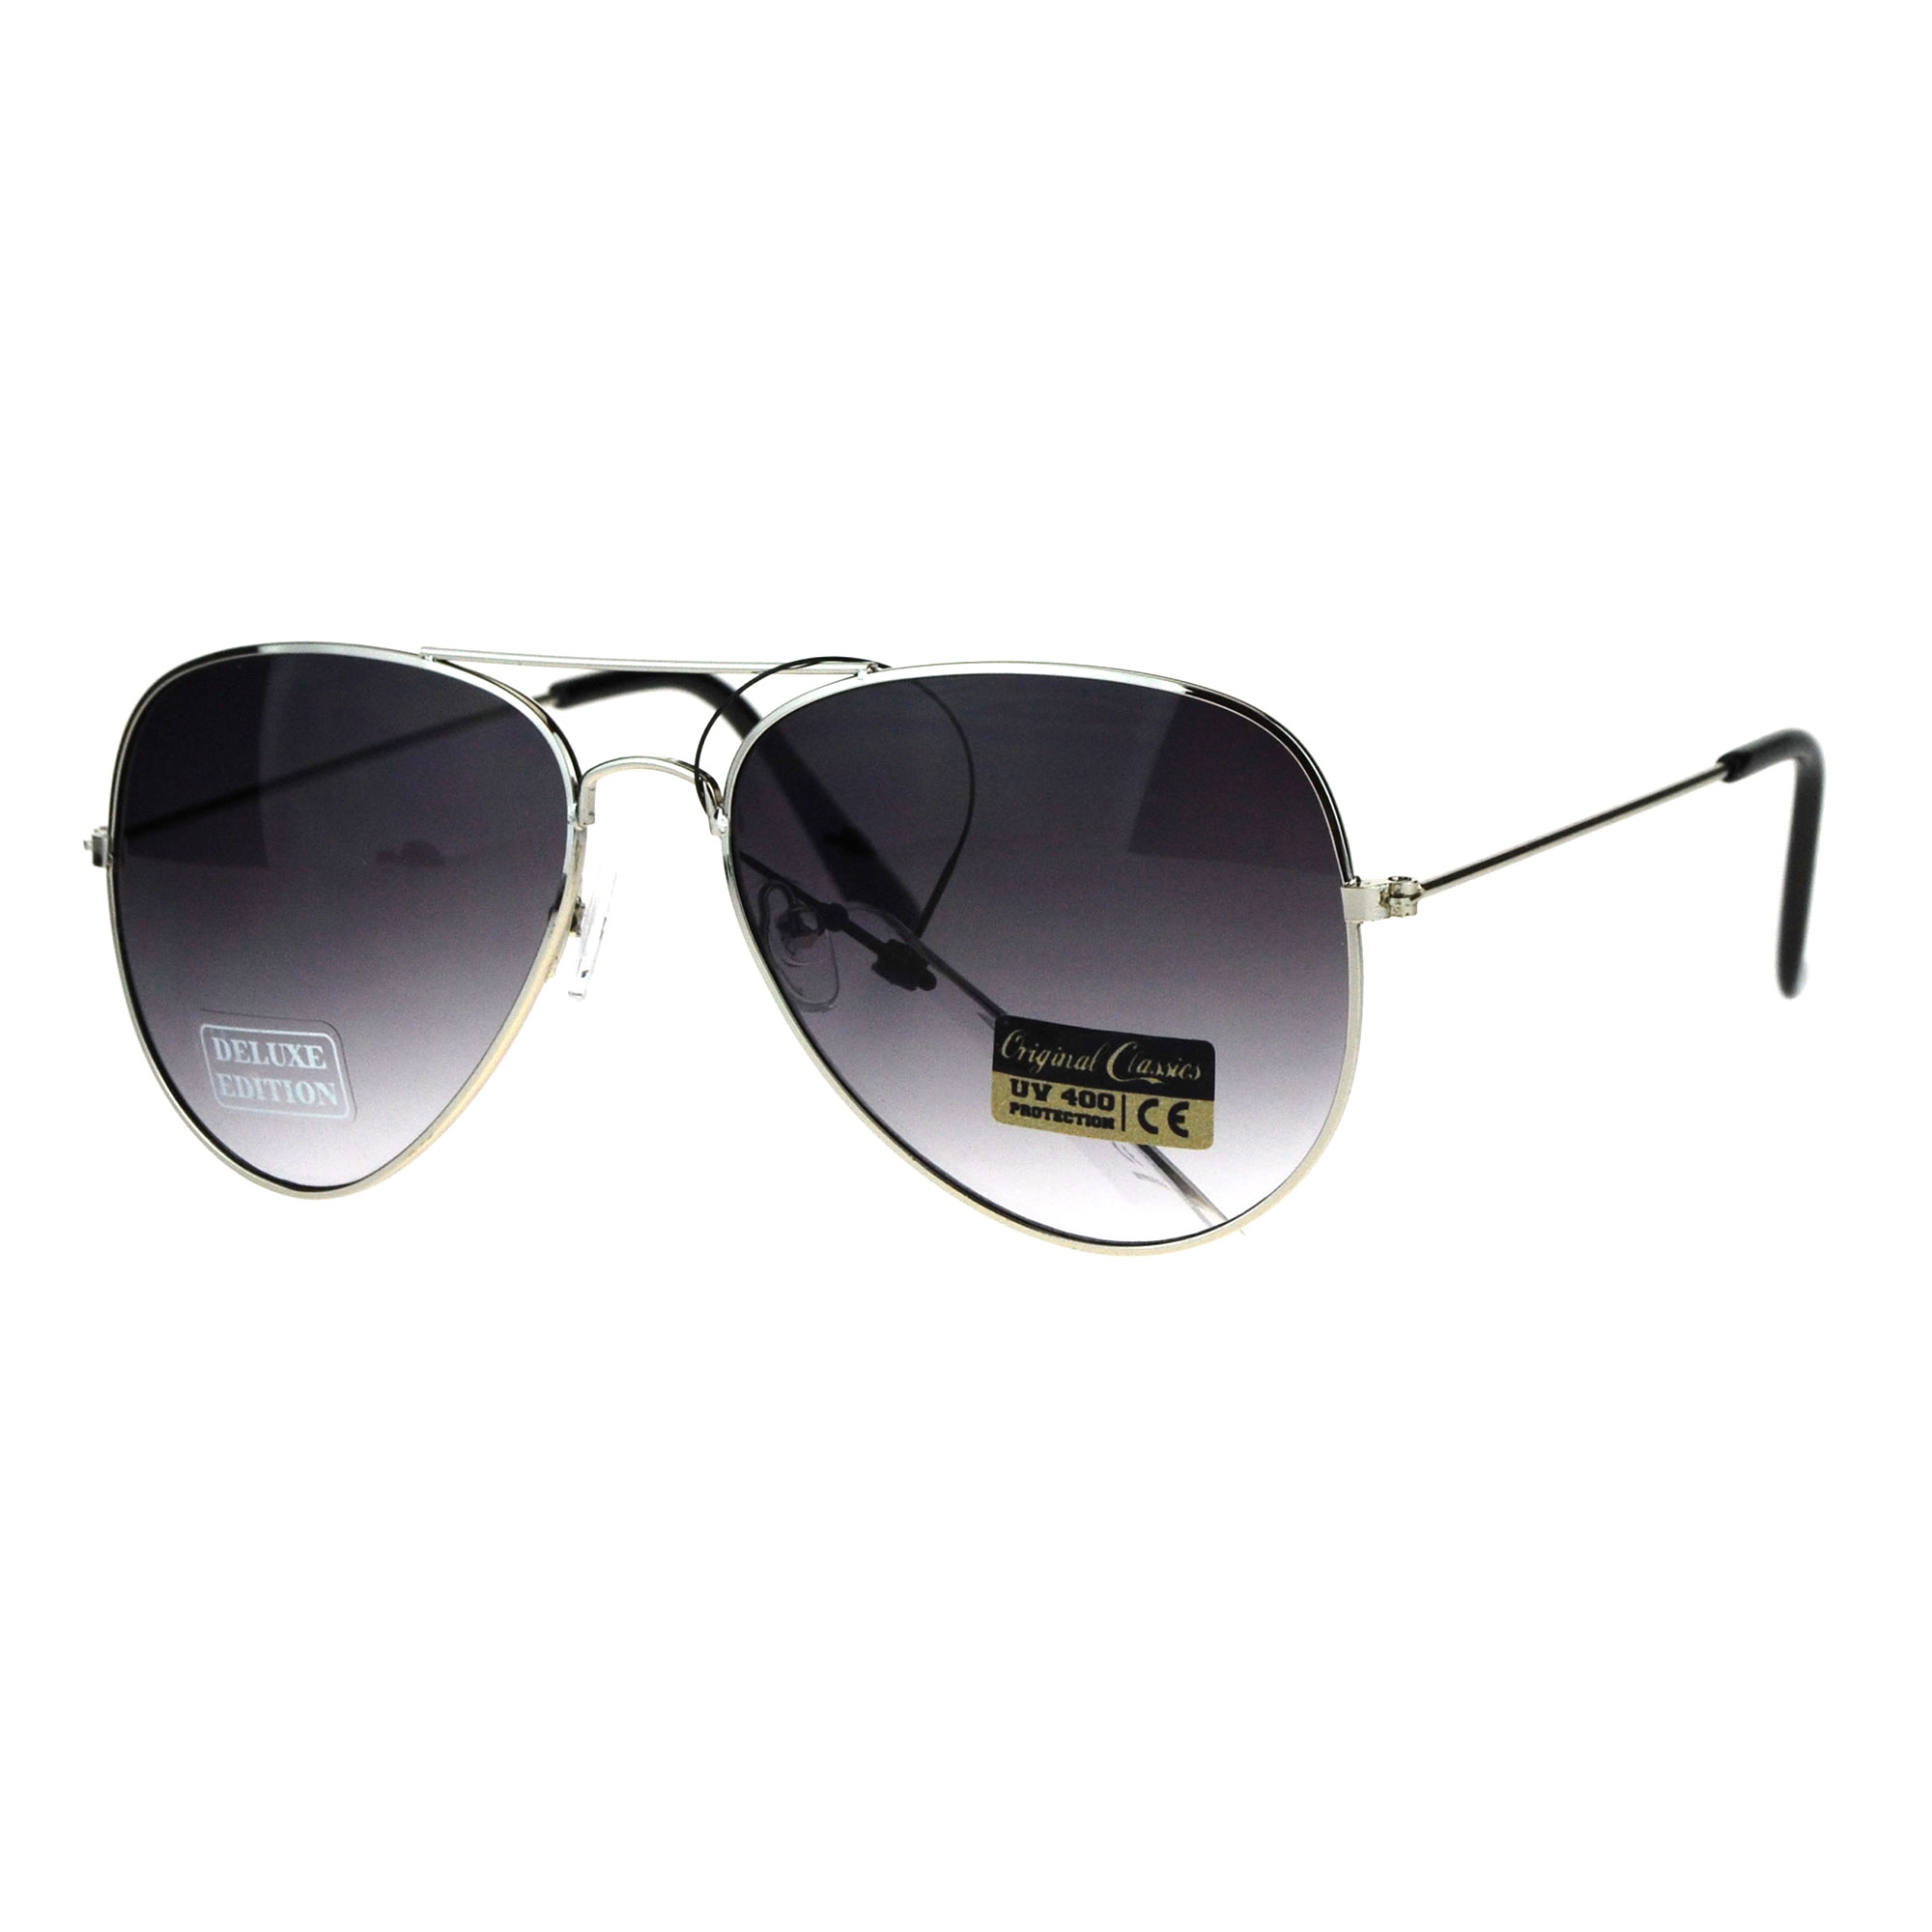 d1302aafa5e Ray Ban 3183 Polarized 002 81 - Psychopraticienne Bordeaux Air Force Mens  Metal Wire Rim Gradient Lens Police Aviator Sunglasses